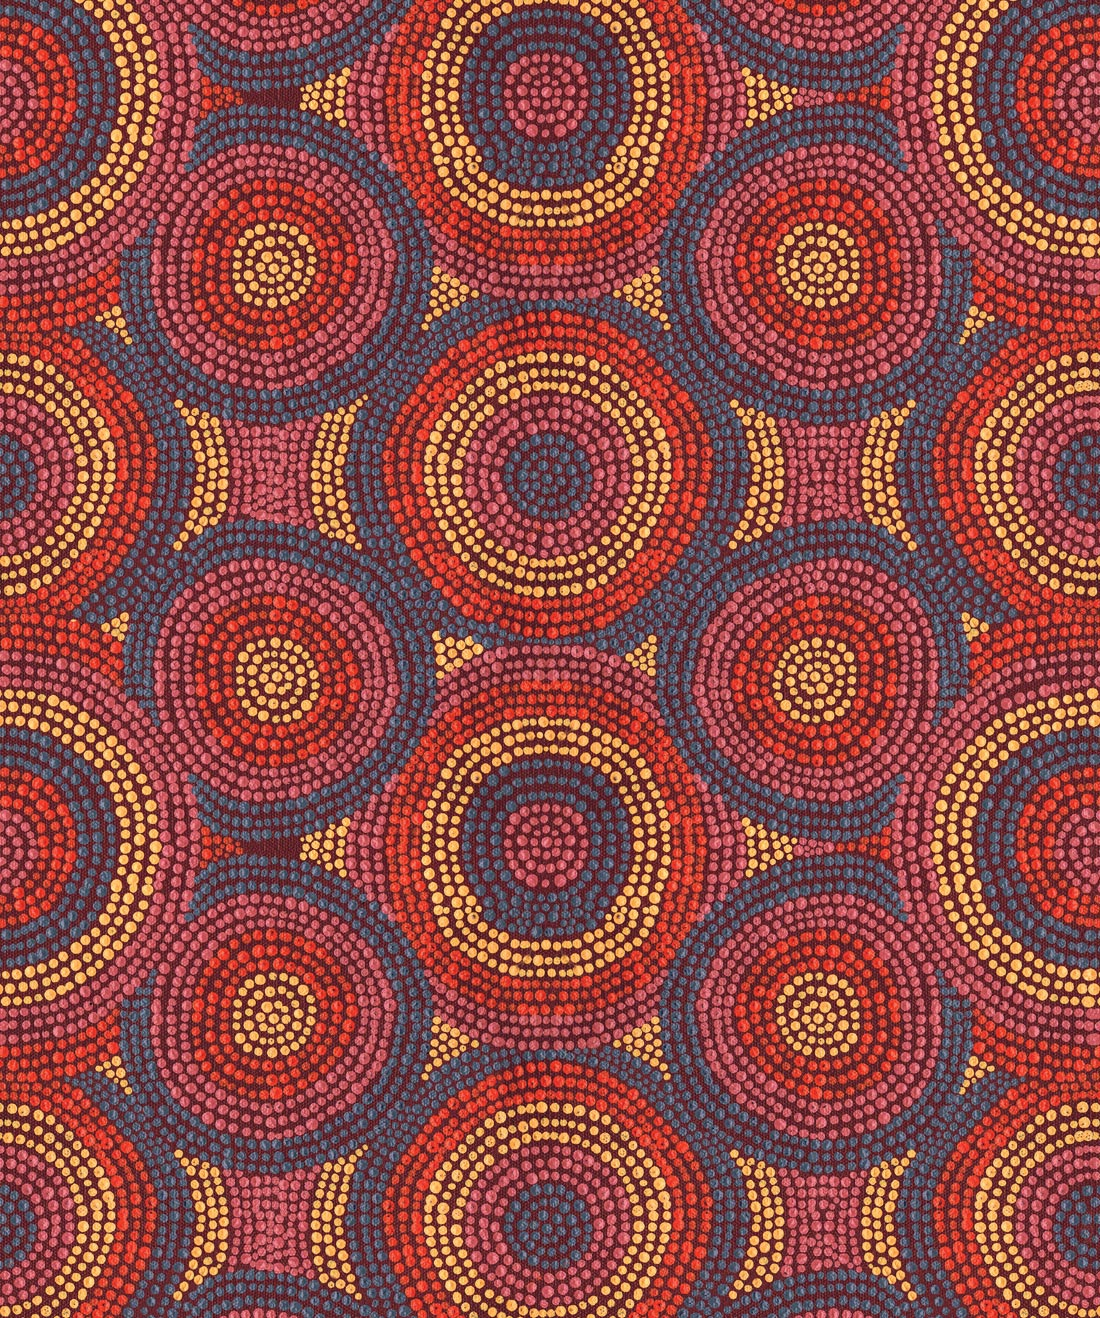 Tjusaula Authentic Indigenous Dot Painting Wallpaper Milton King